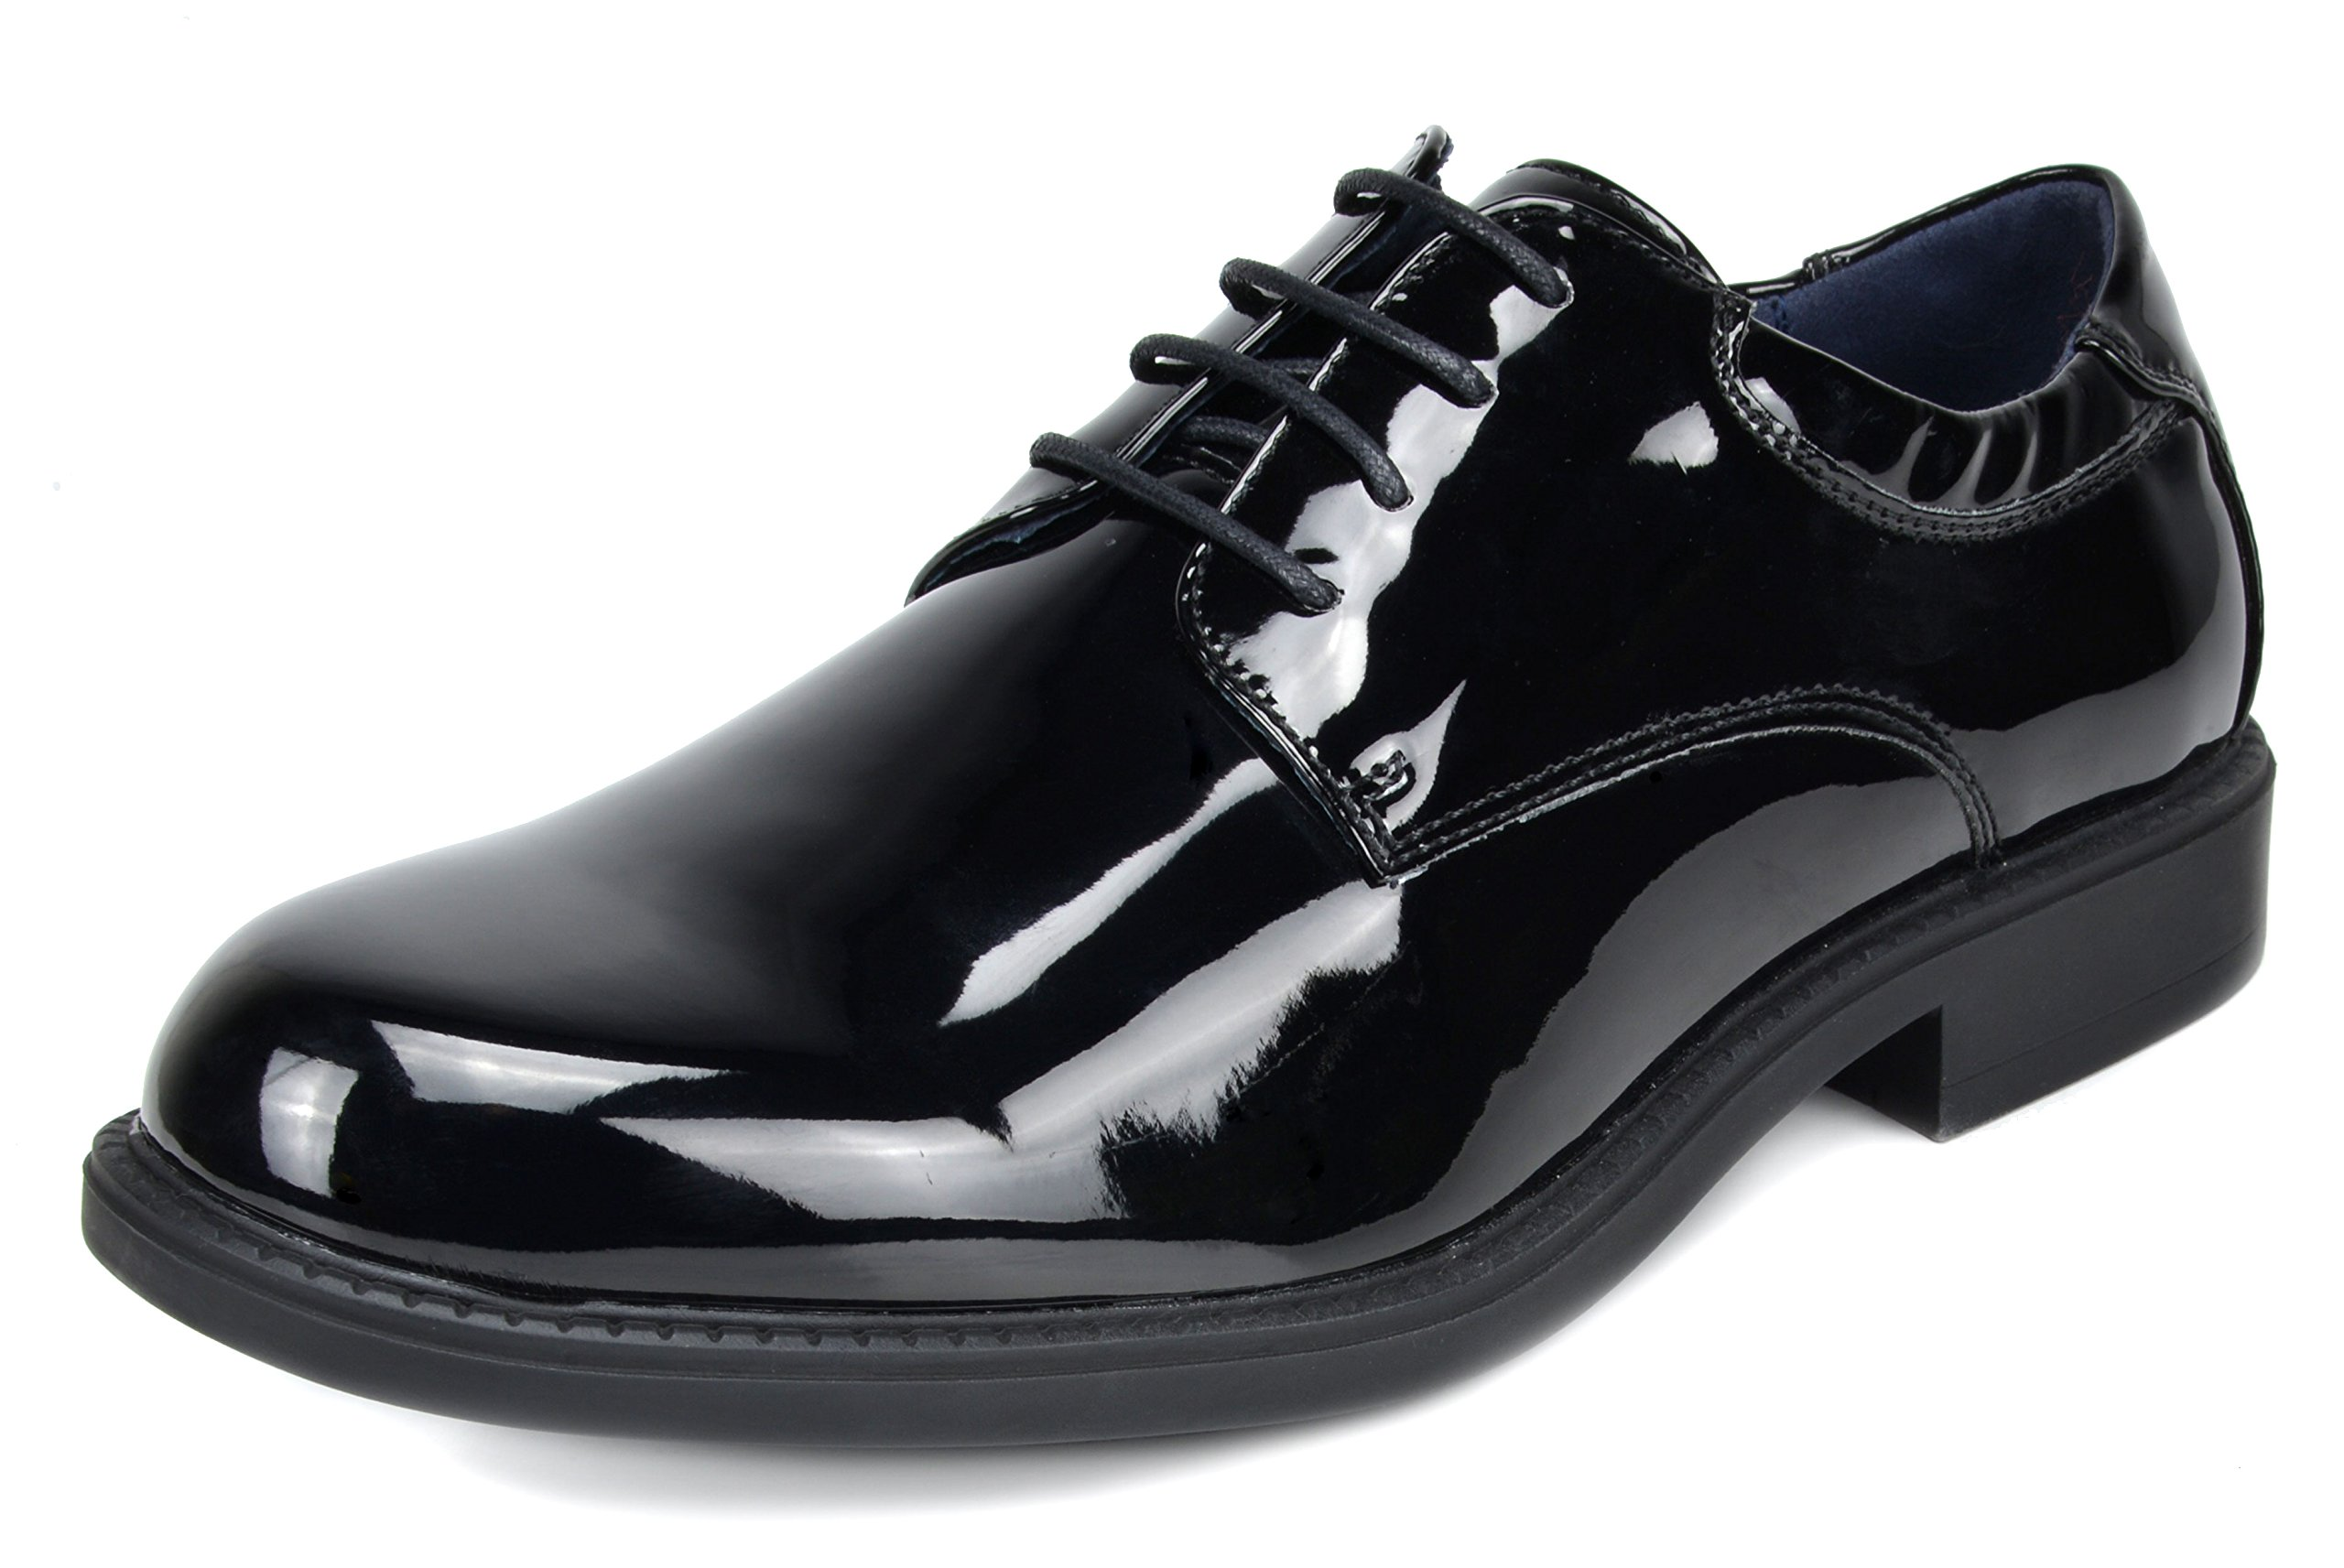 Bruno Marc Men's Downing-02 Black Pat Leather Lined Dress Oxfords Shoes - 15 M US